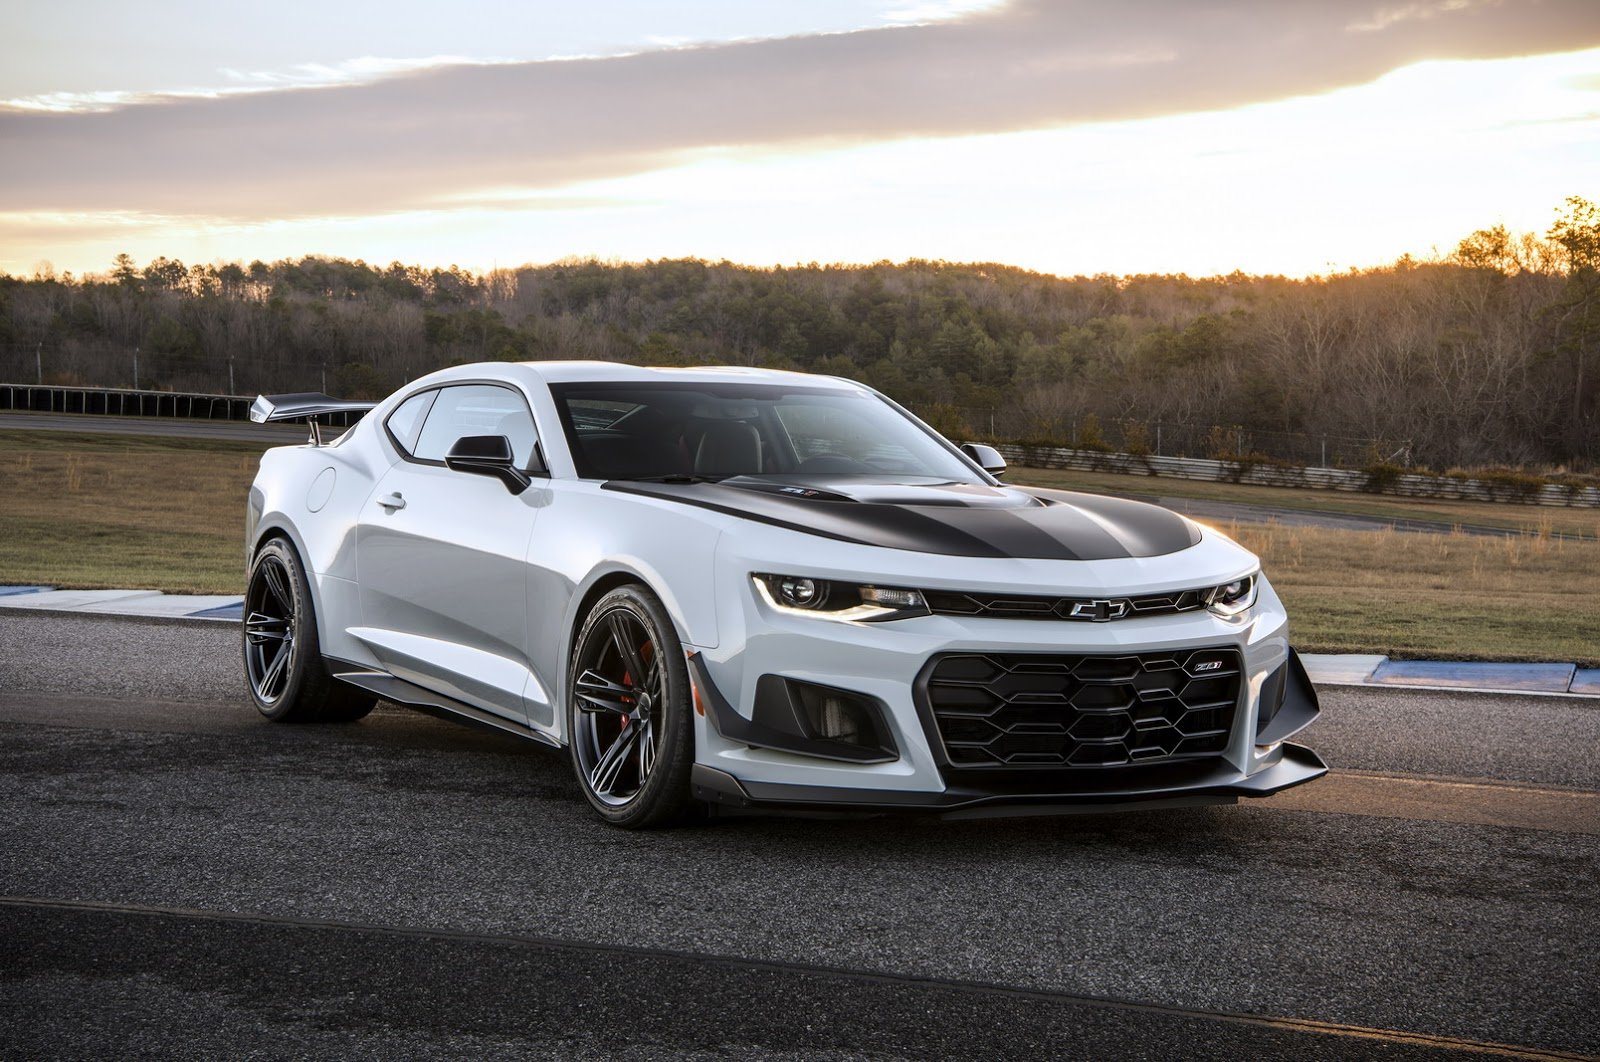 Chevy Releases Video Of Spectacular Camaro ZL1 1LE 7:16.04 'Ring Lap